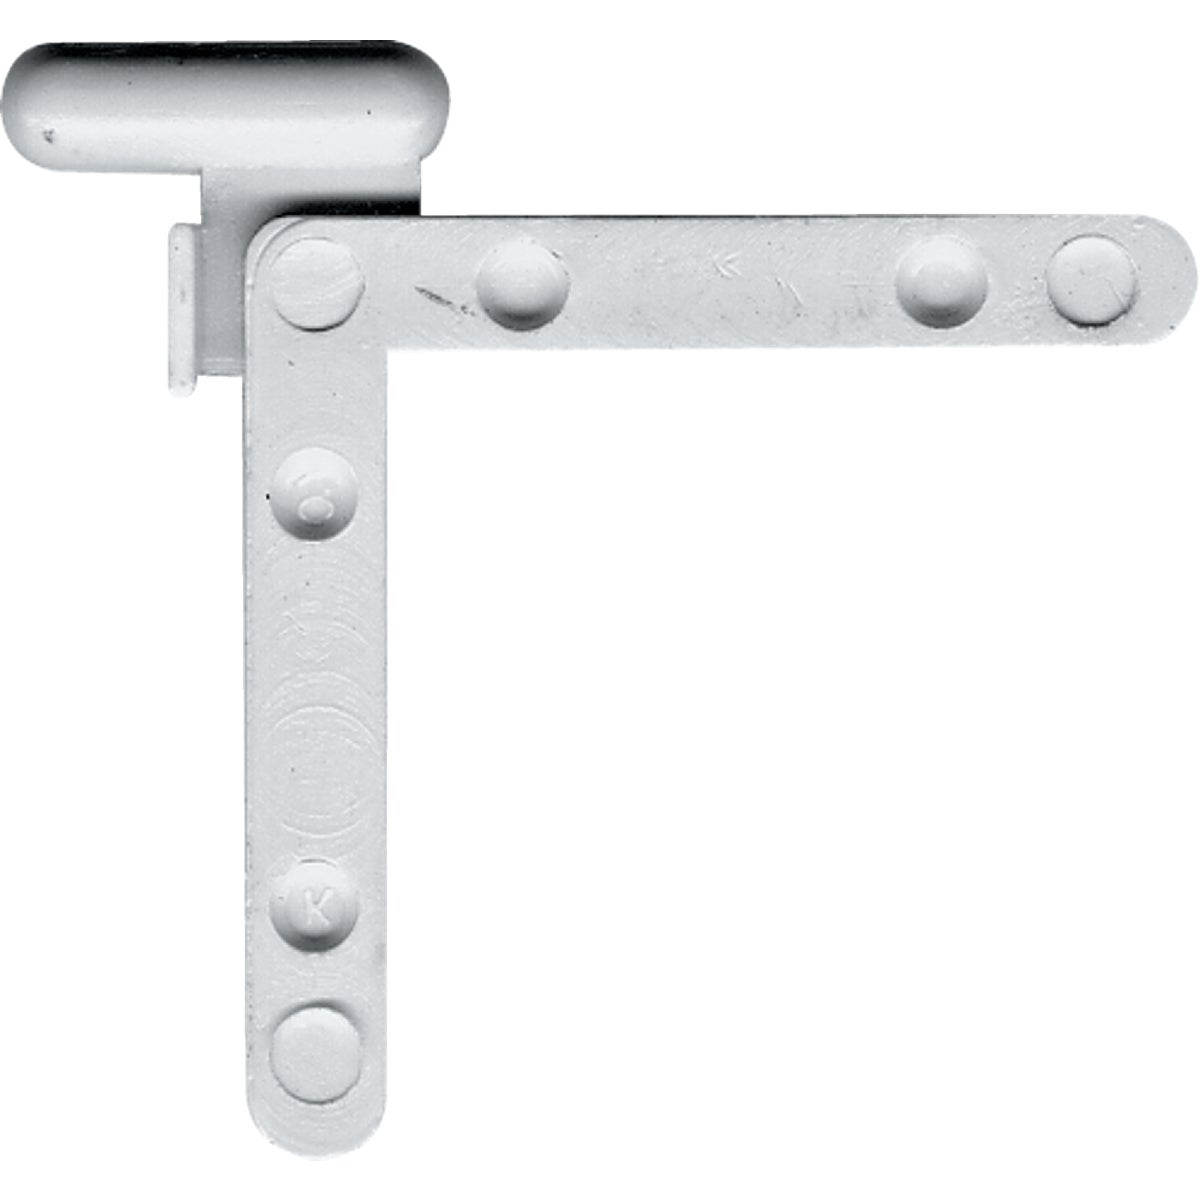 3/16X3/16 NYLON TILT KEY - PL15130 by Prime Line Products